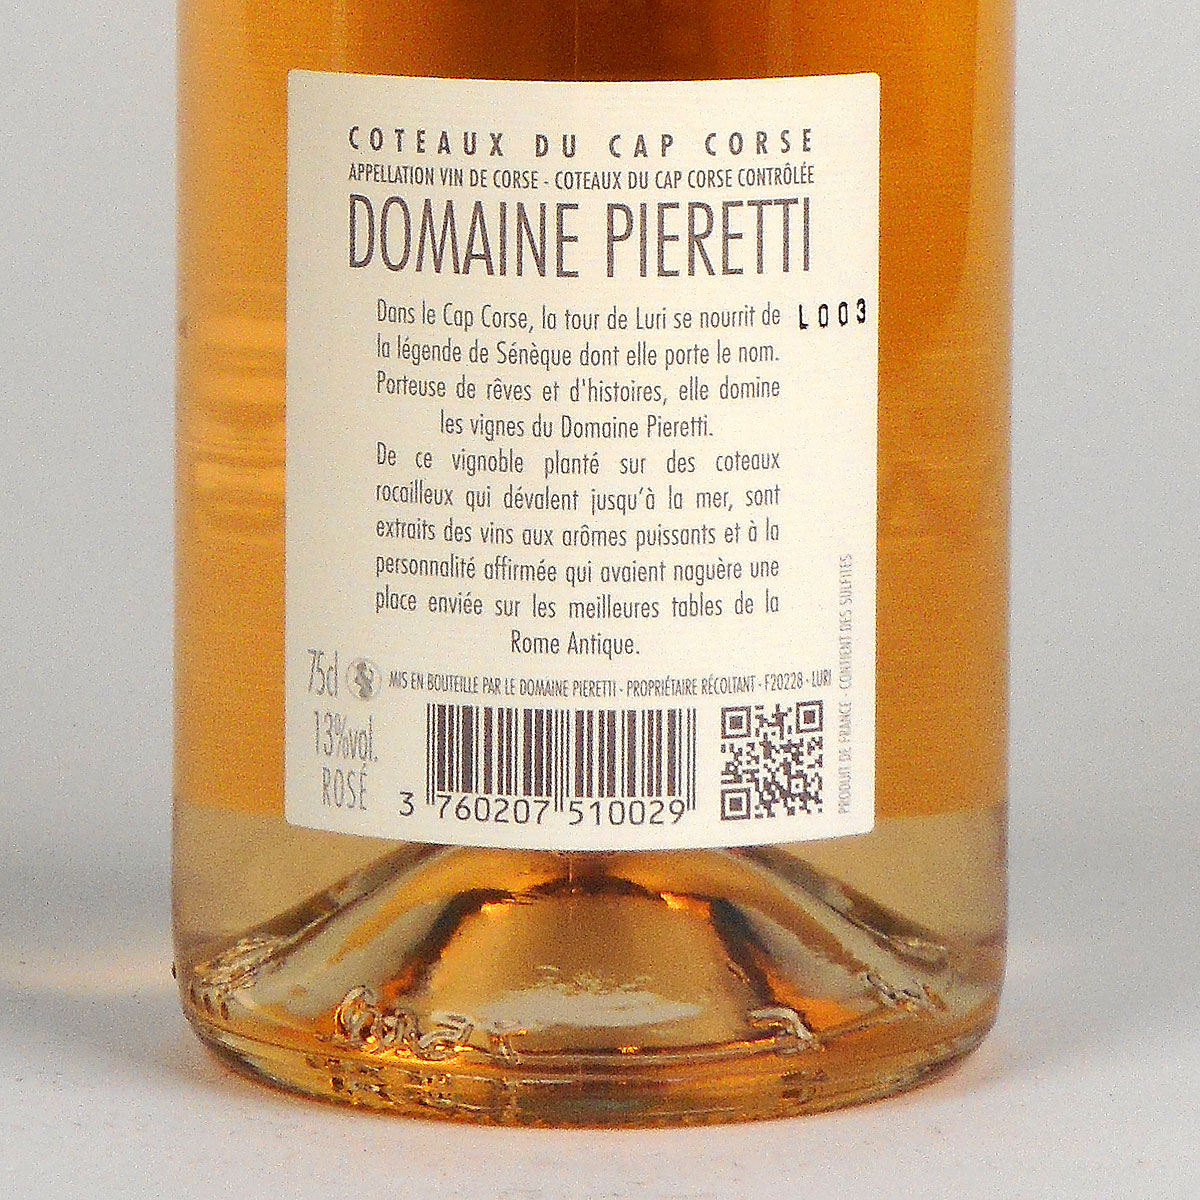 Coteaux du Cap Corse: Domaine Pieretti Rosé 2018 - Bottle Rear Label